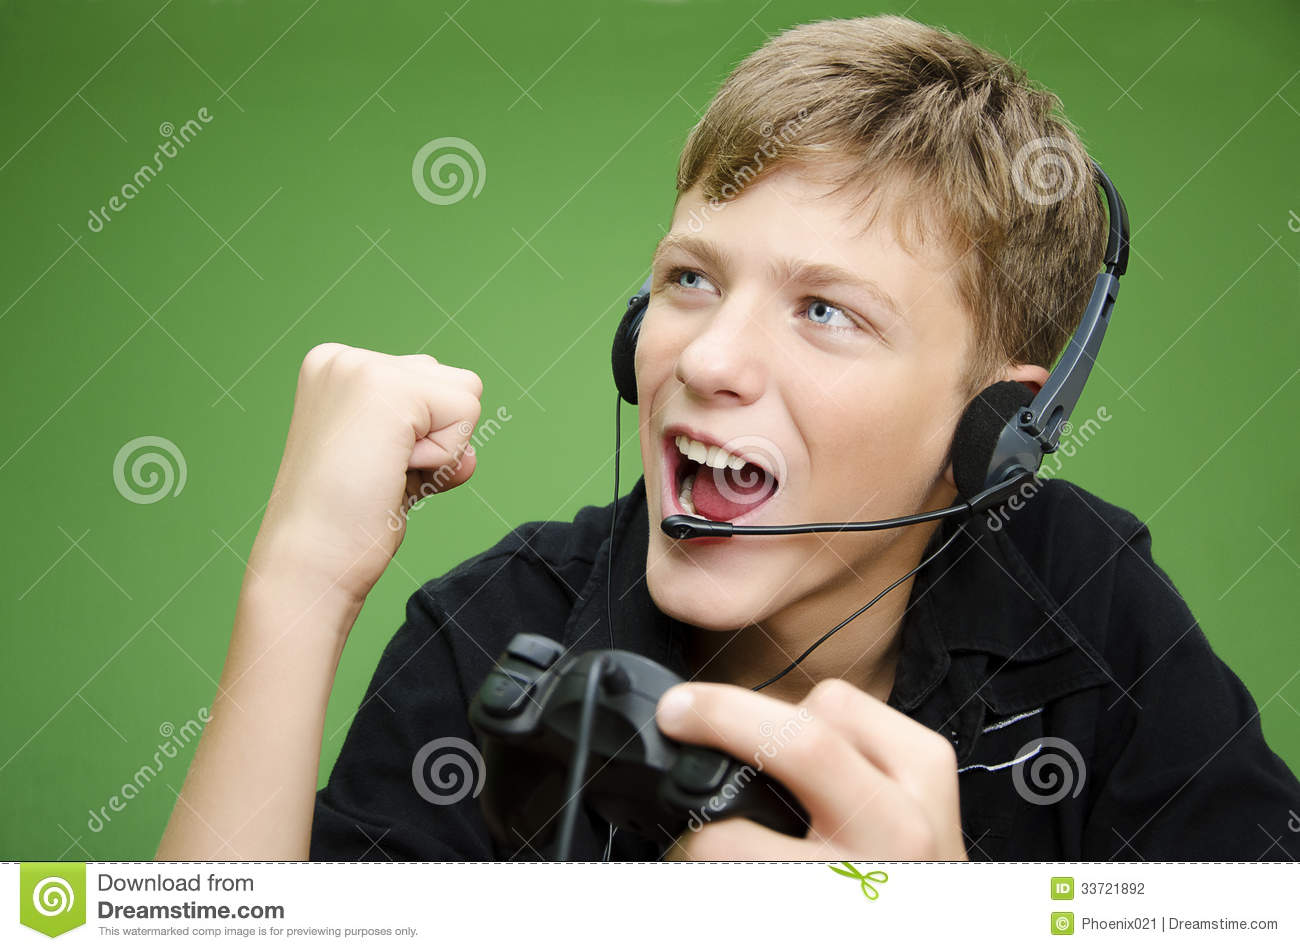 Boy Playing Video Games Win Stock Photo Image Of Green Computer